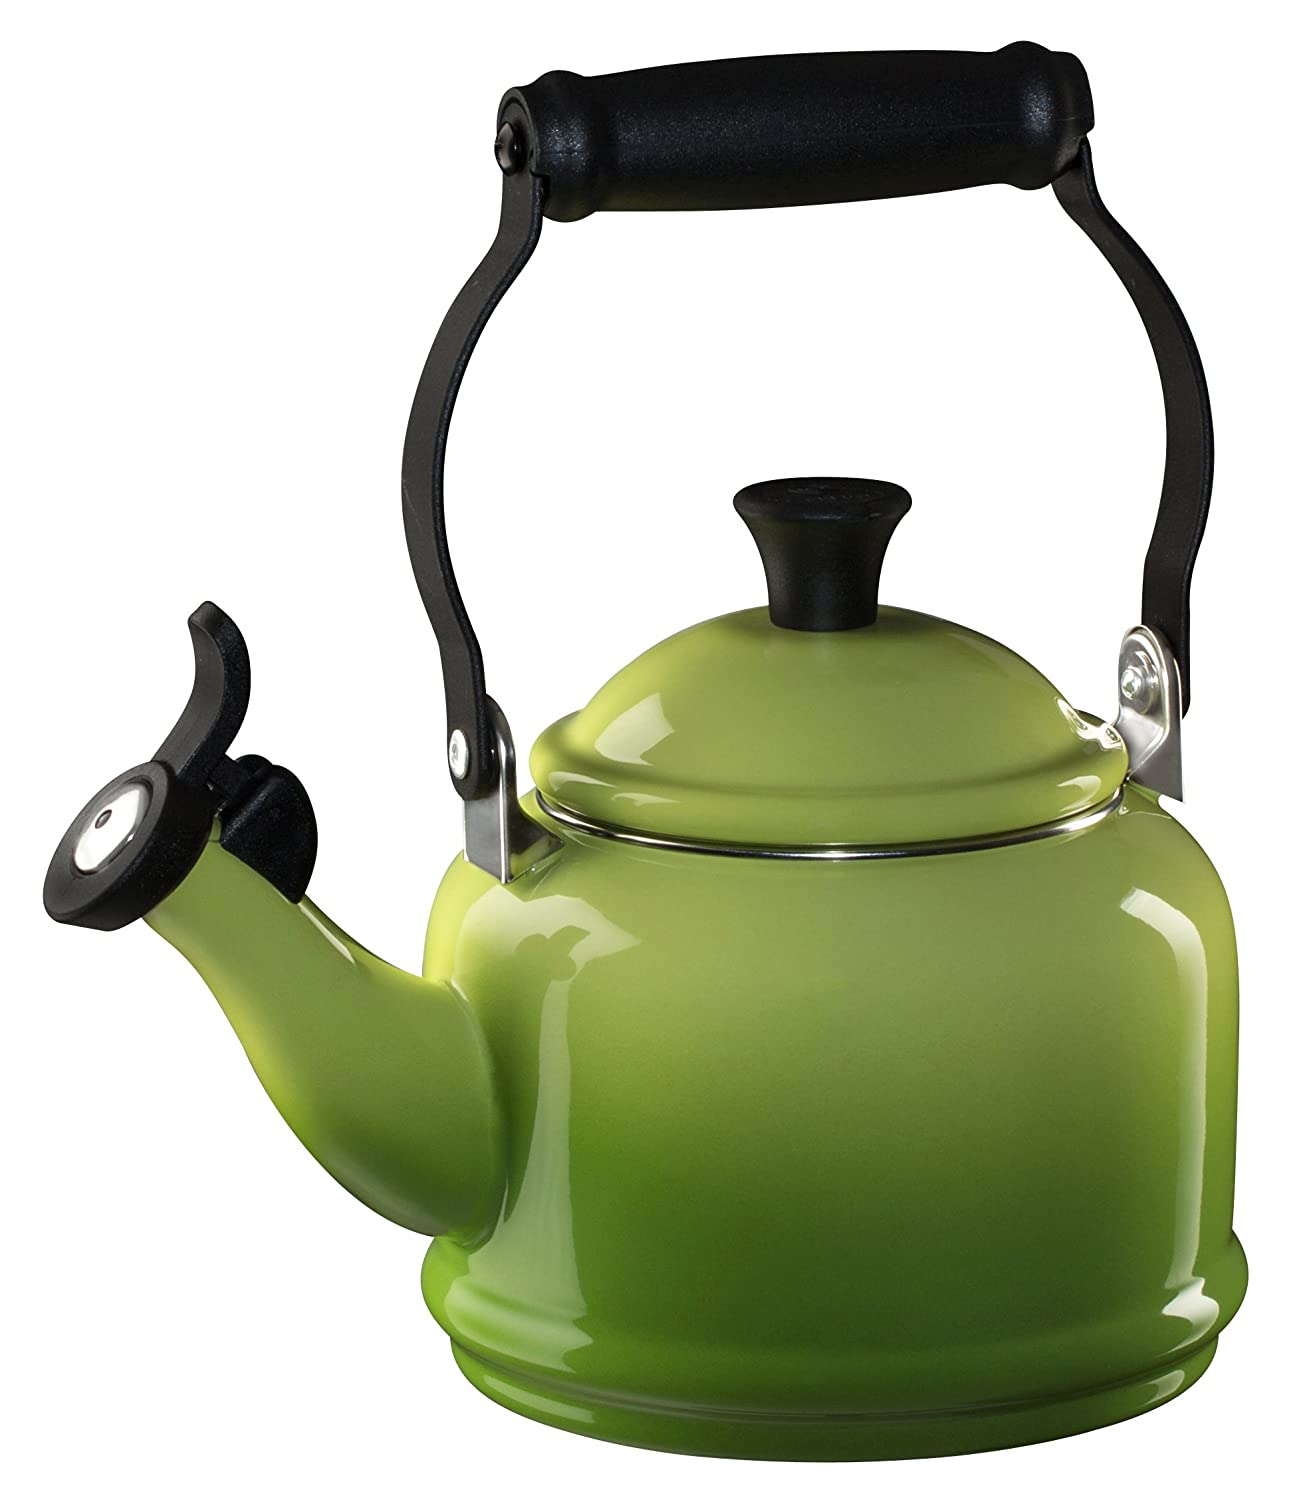 Le Creuset Enamel-on-Steel Demi 1-1/4-Quart Teakettle